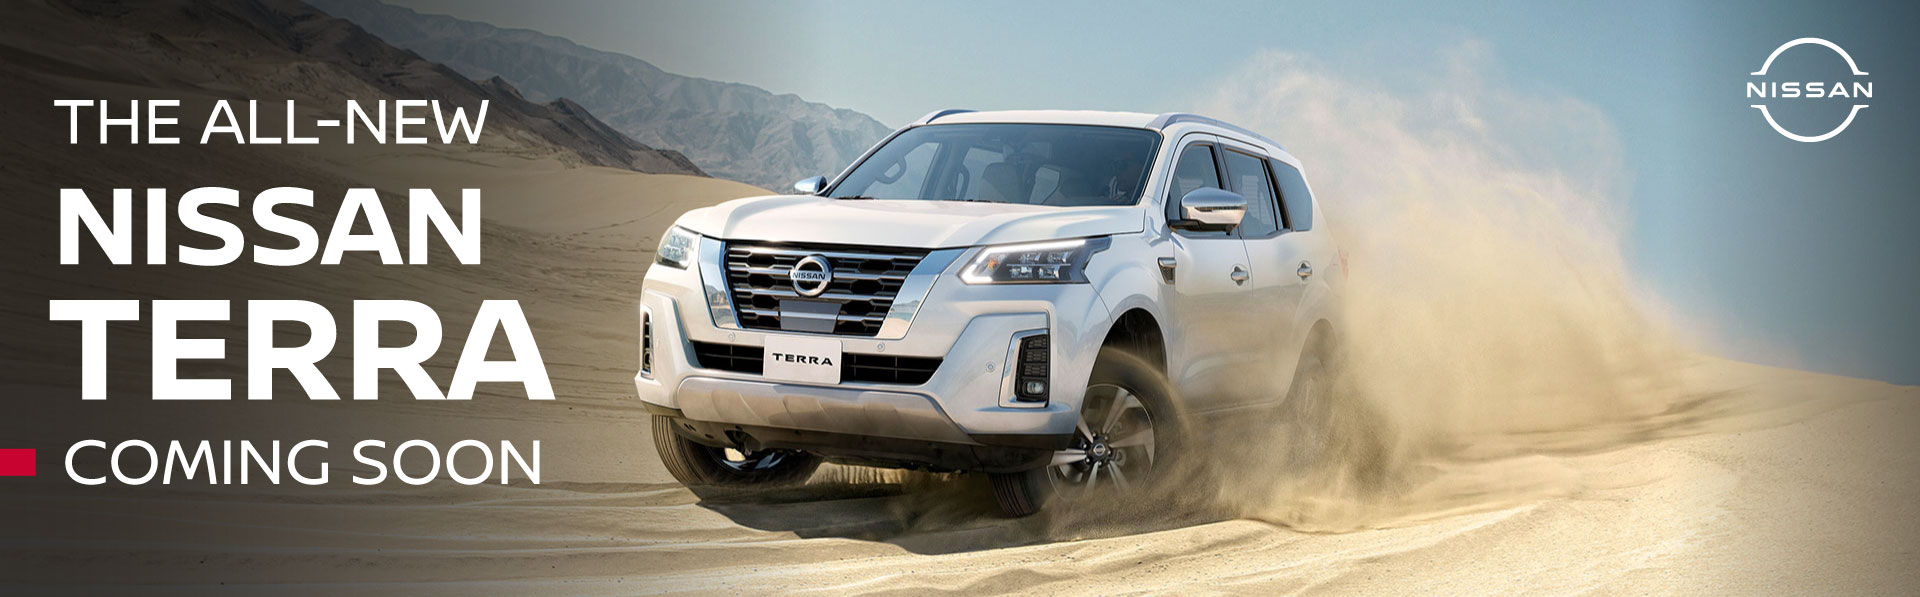 all-new-nissan-terra-arriving-soon